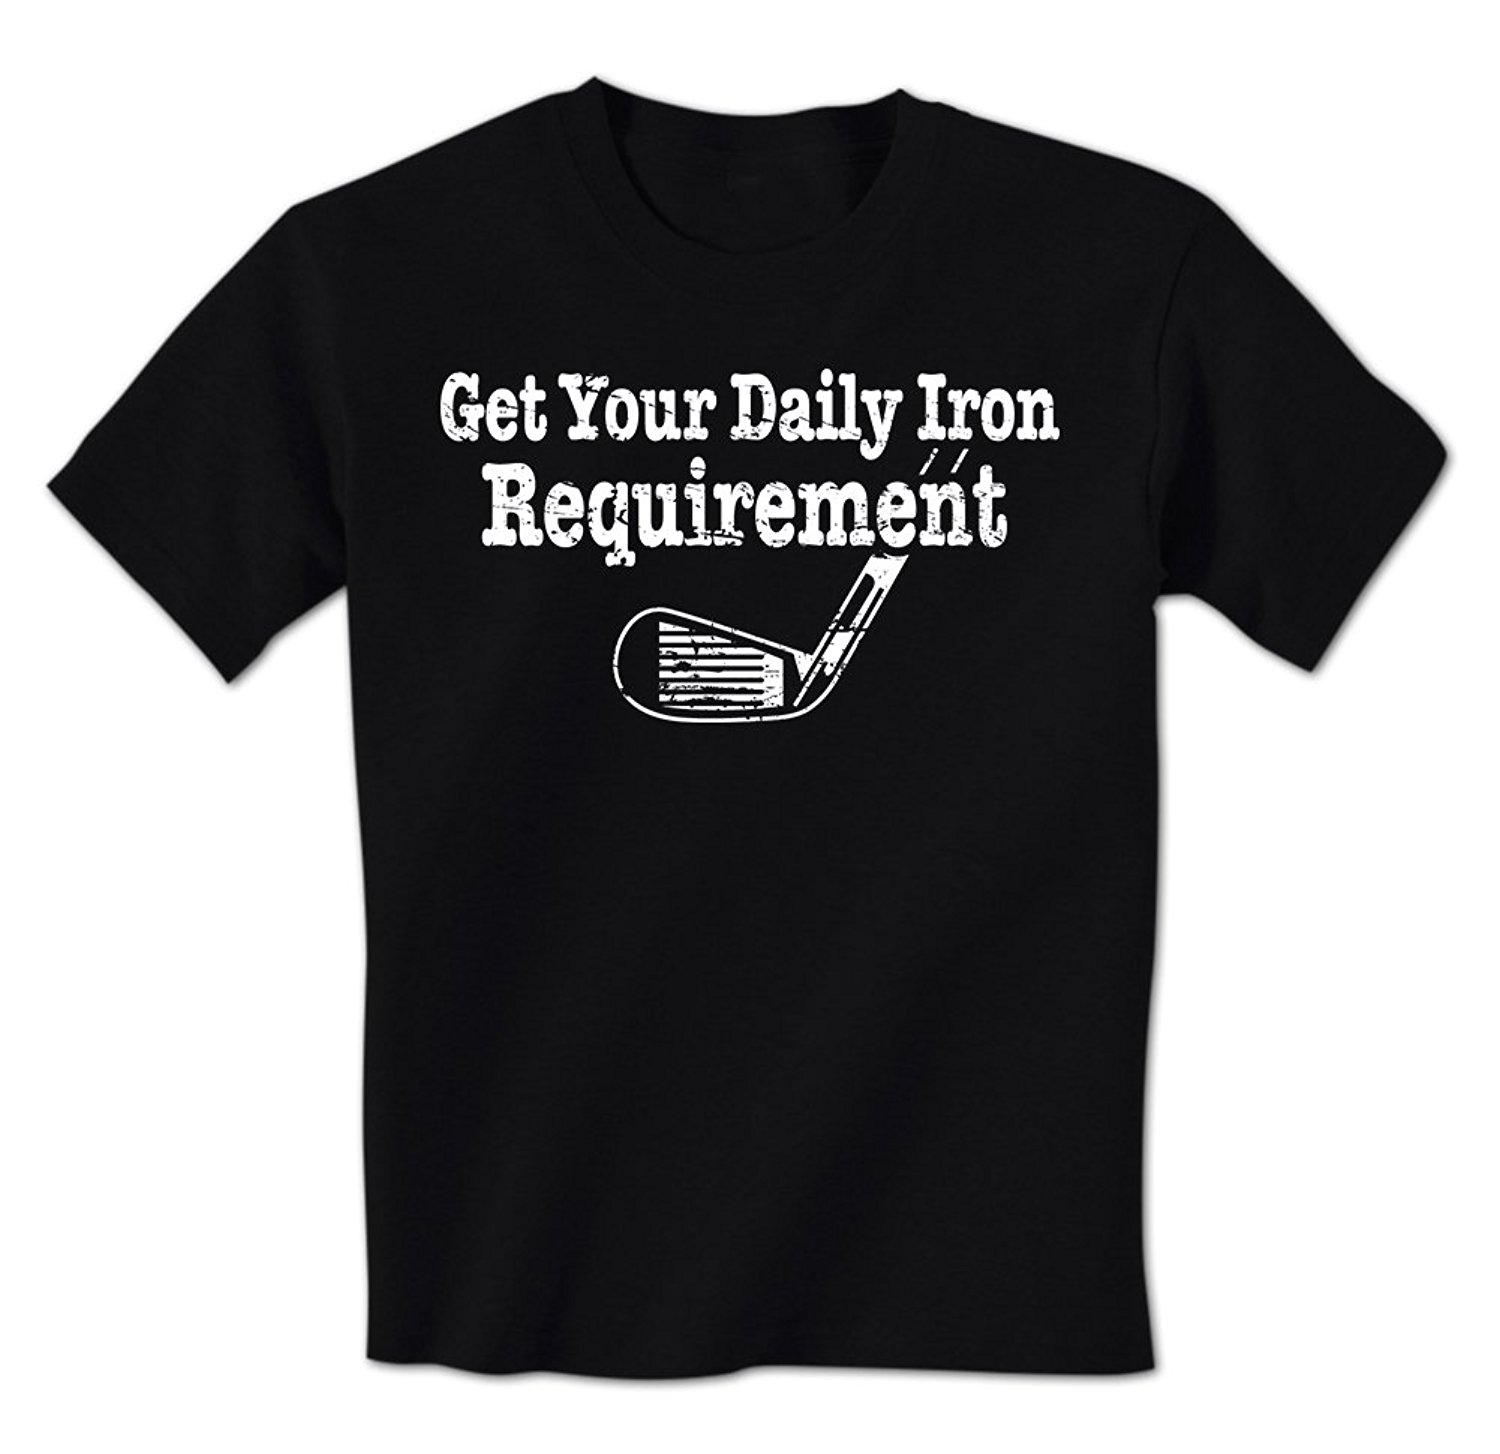 2018 Hot sale Fashion Get Your Daily Iron Requirement Funny Golfs Club Iron Driver Mens T-Shirt Tee shirt